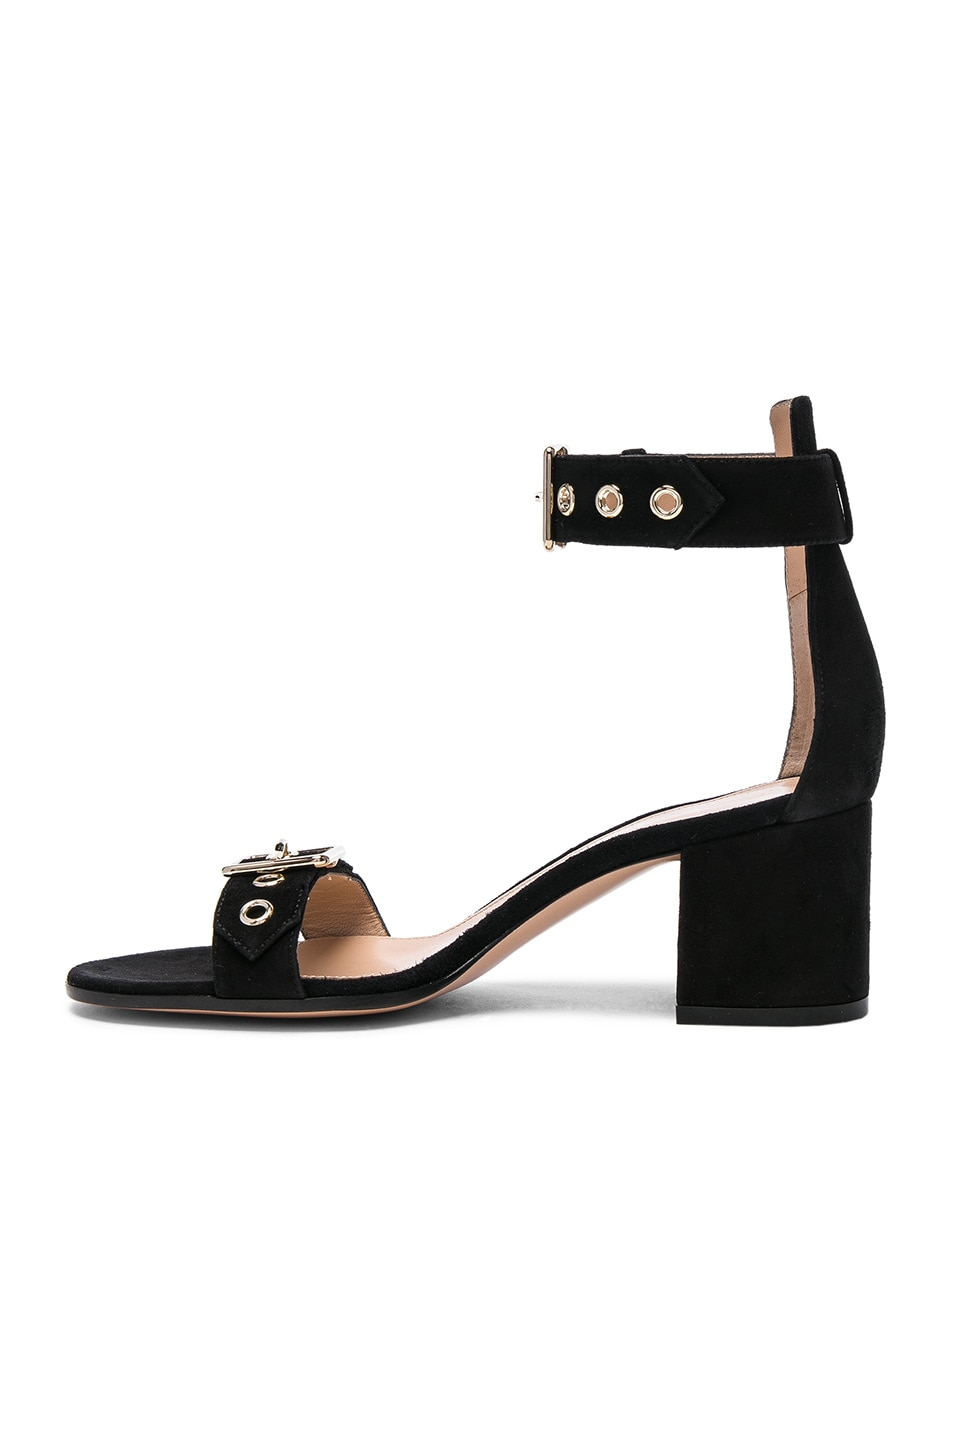 Image 5 of Gianvito Rossi Suede Buckle Detail Sandals in Black